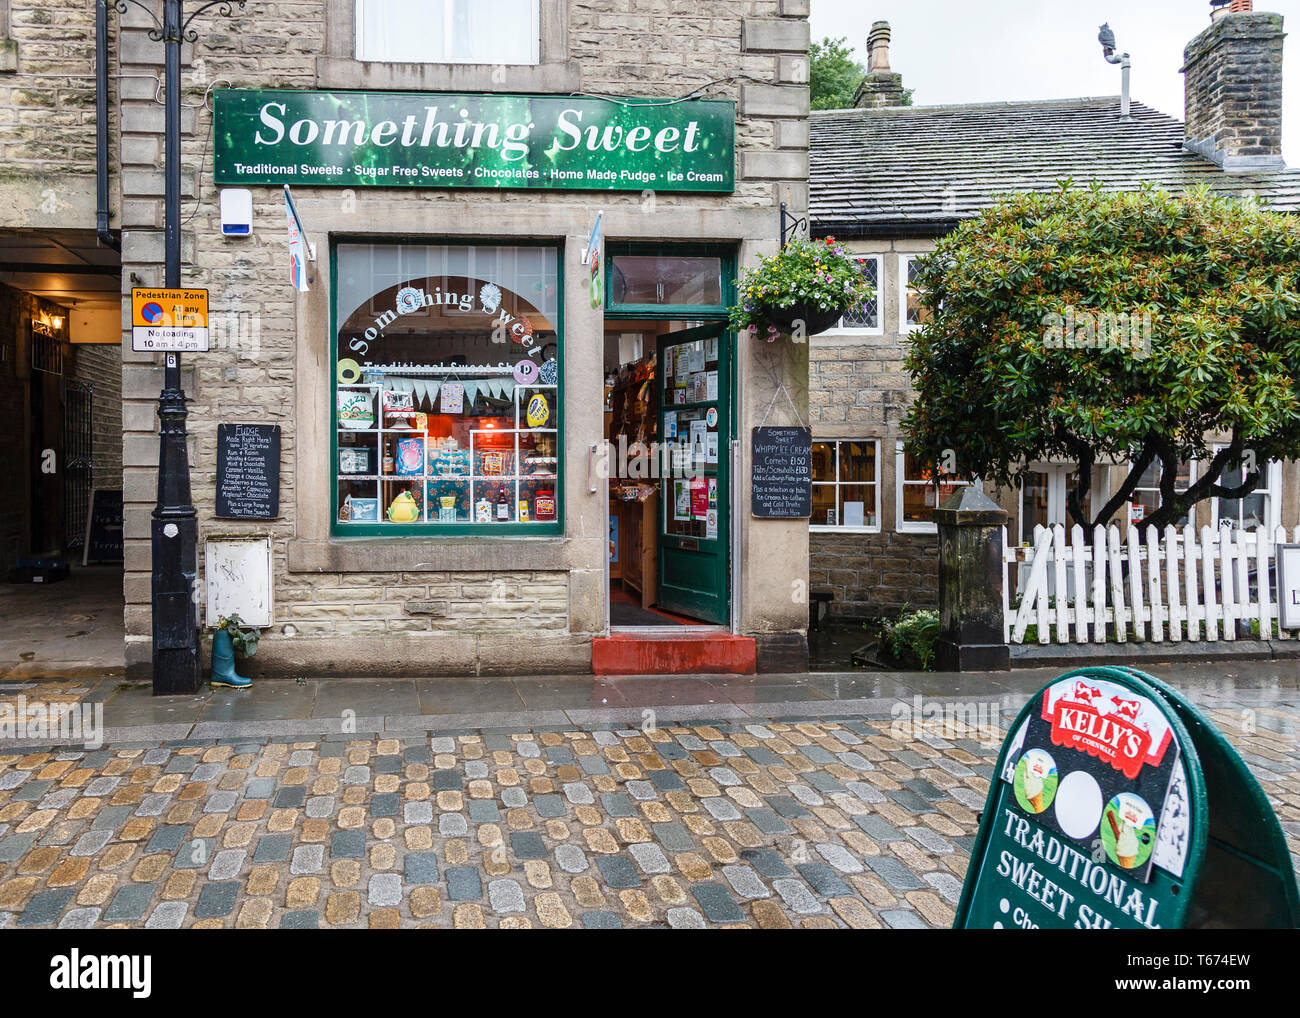 Something Sweet, a well known sweet shop in the centre of Hedben Bridge, Calderdale, West Yorkshire - Stock Image